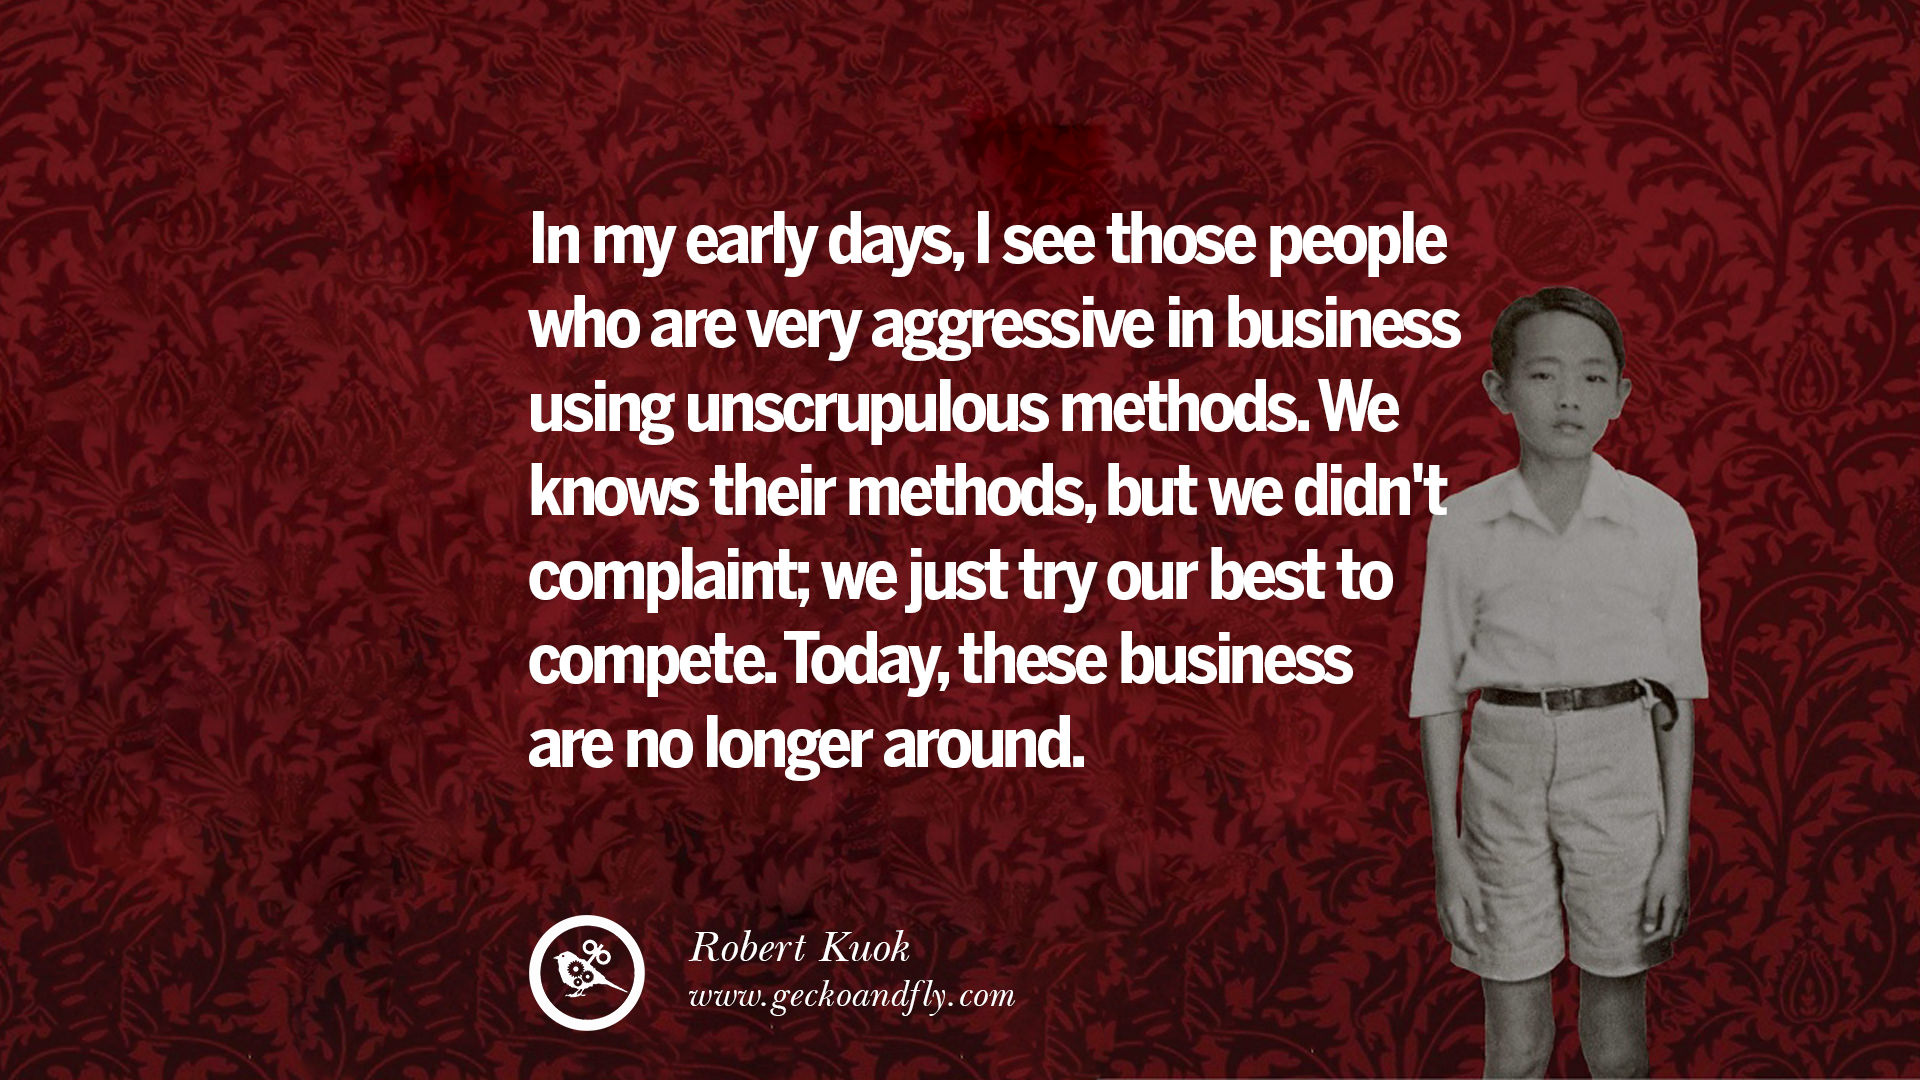 Aggressive Quotes 10 Inspiring Robert Kuok Quotes On Business Opportunities And